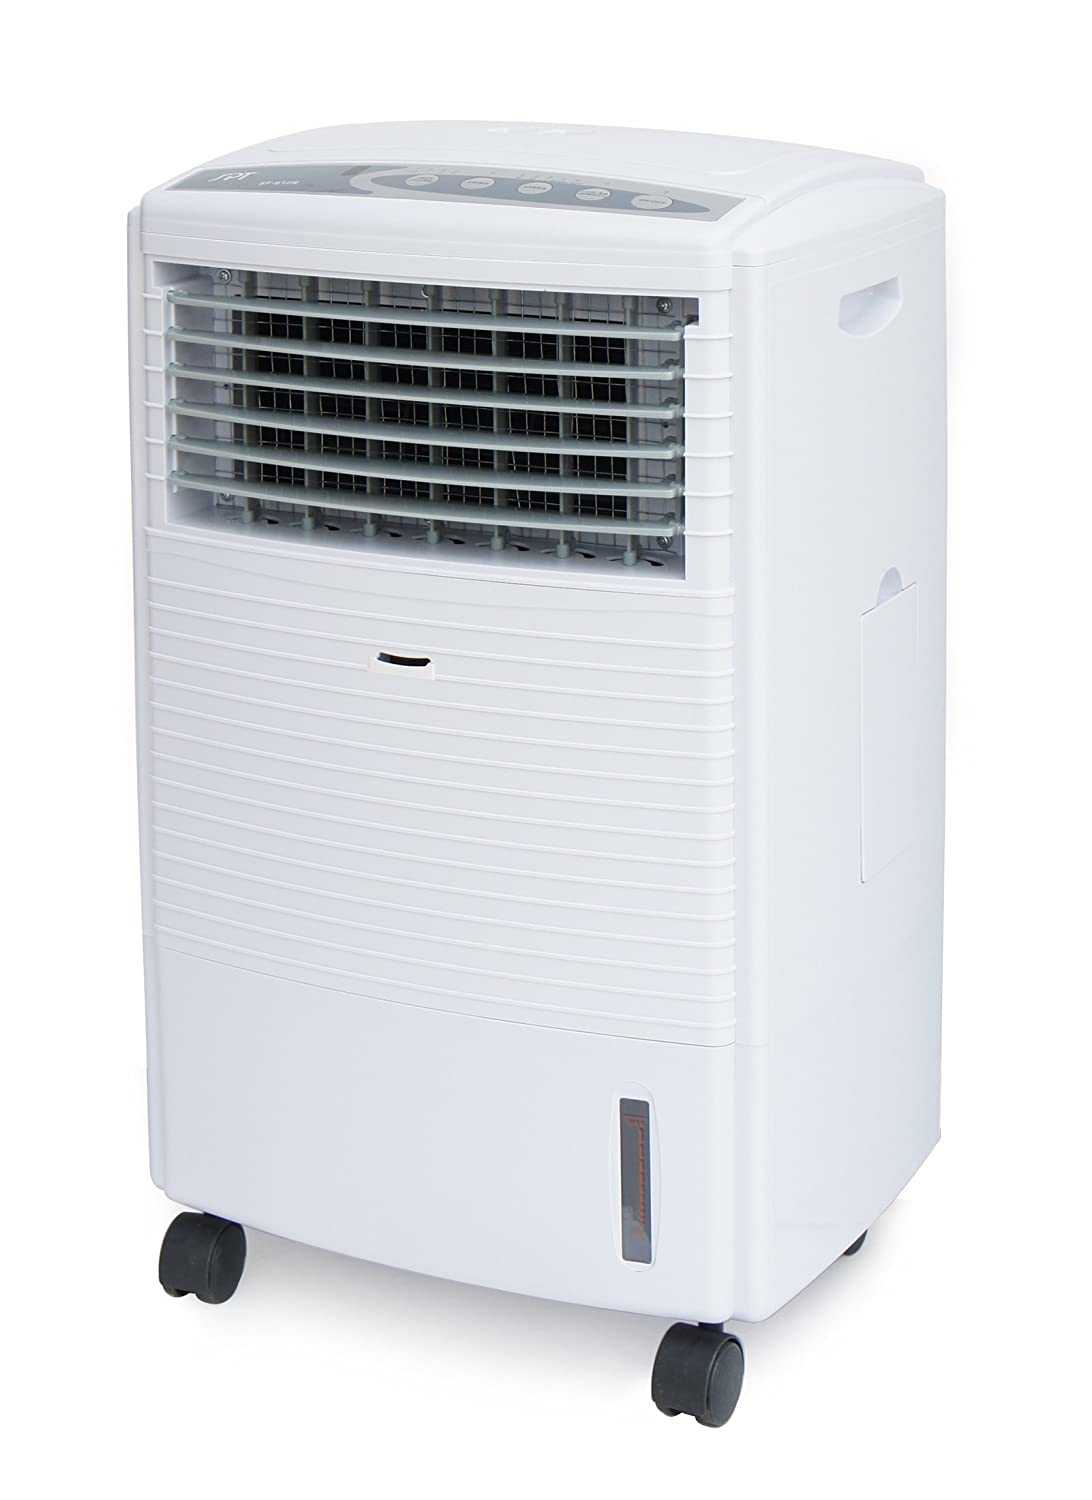 SPT SF-607H Evaporative Air Cooler with Ultrasonic Humidifier Sunpentown International Inc.